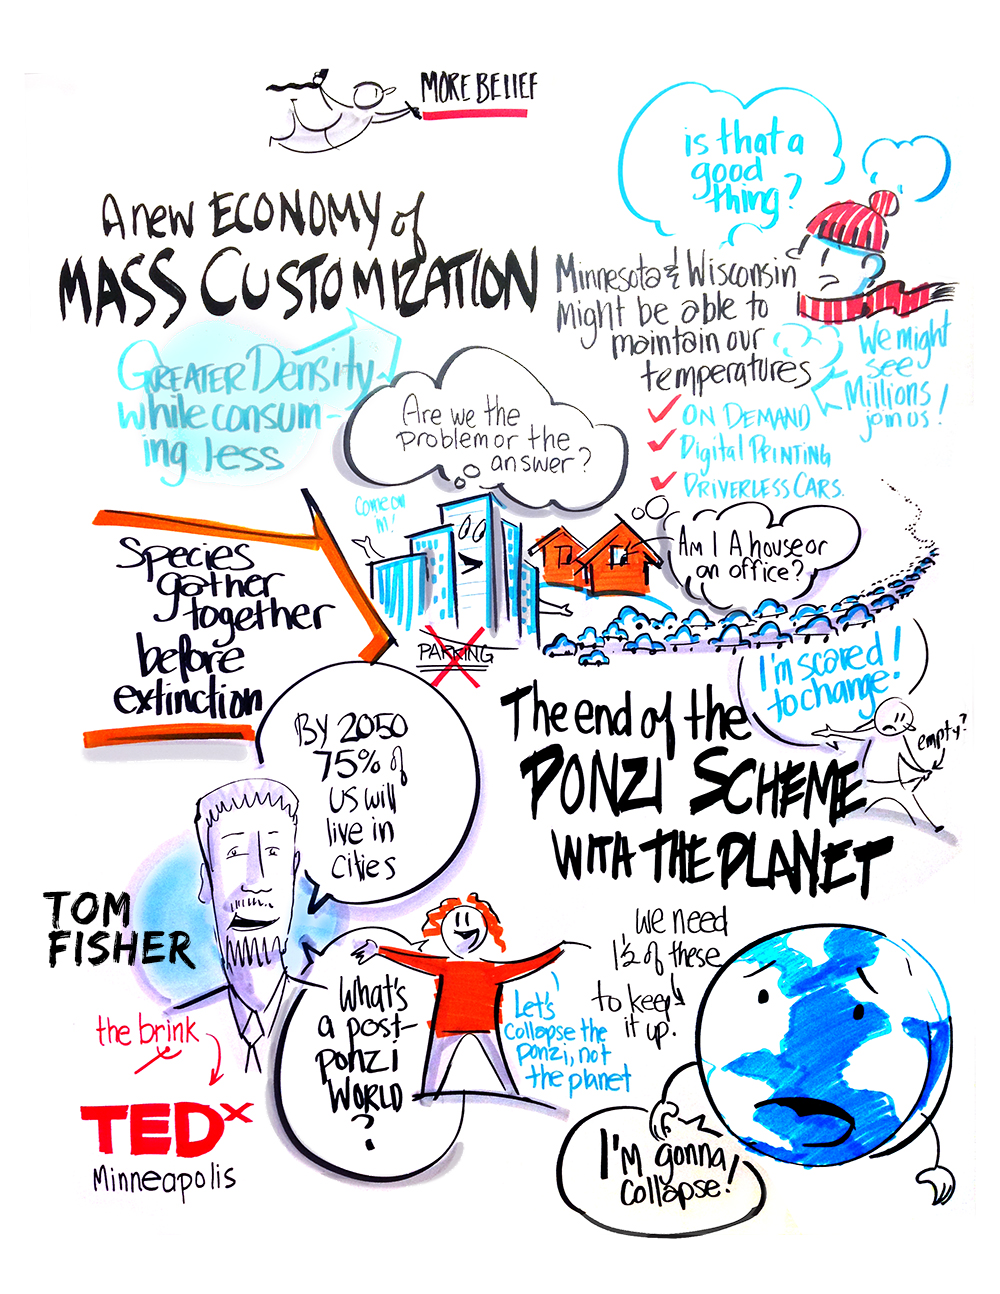 Copy of LIVE DRAWING TEDX CONFERENCE 2016 | MORE BELIEF